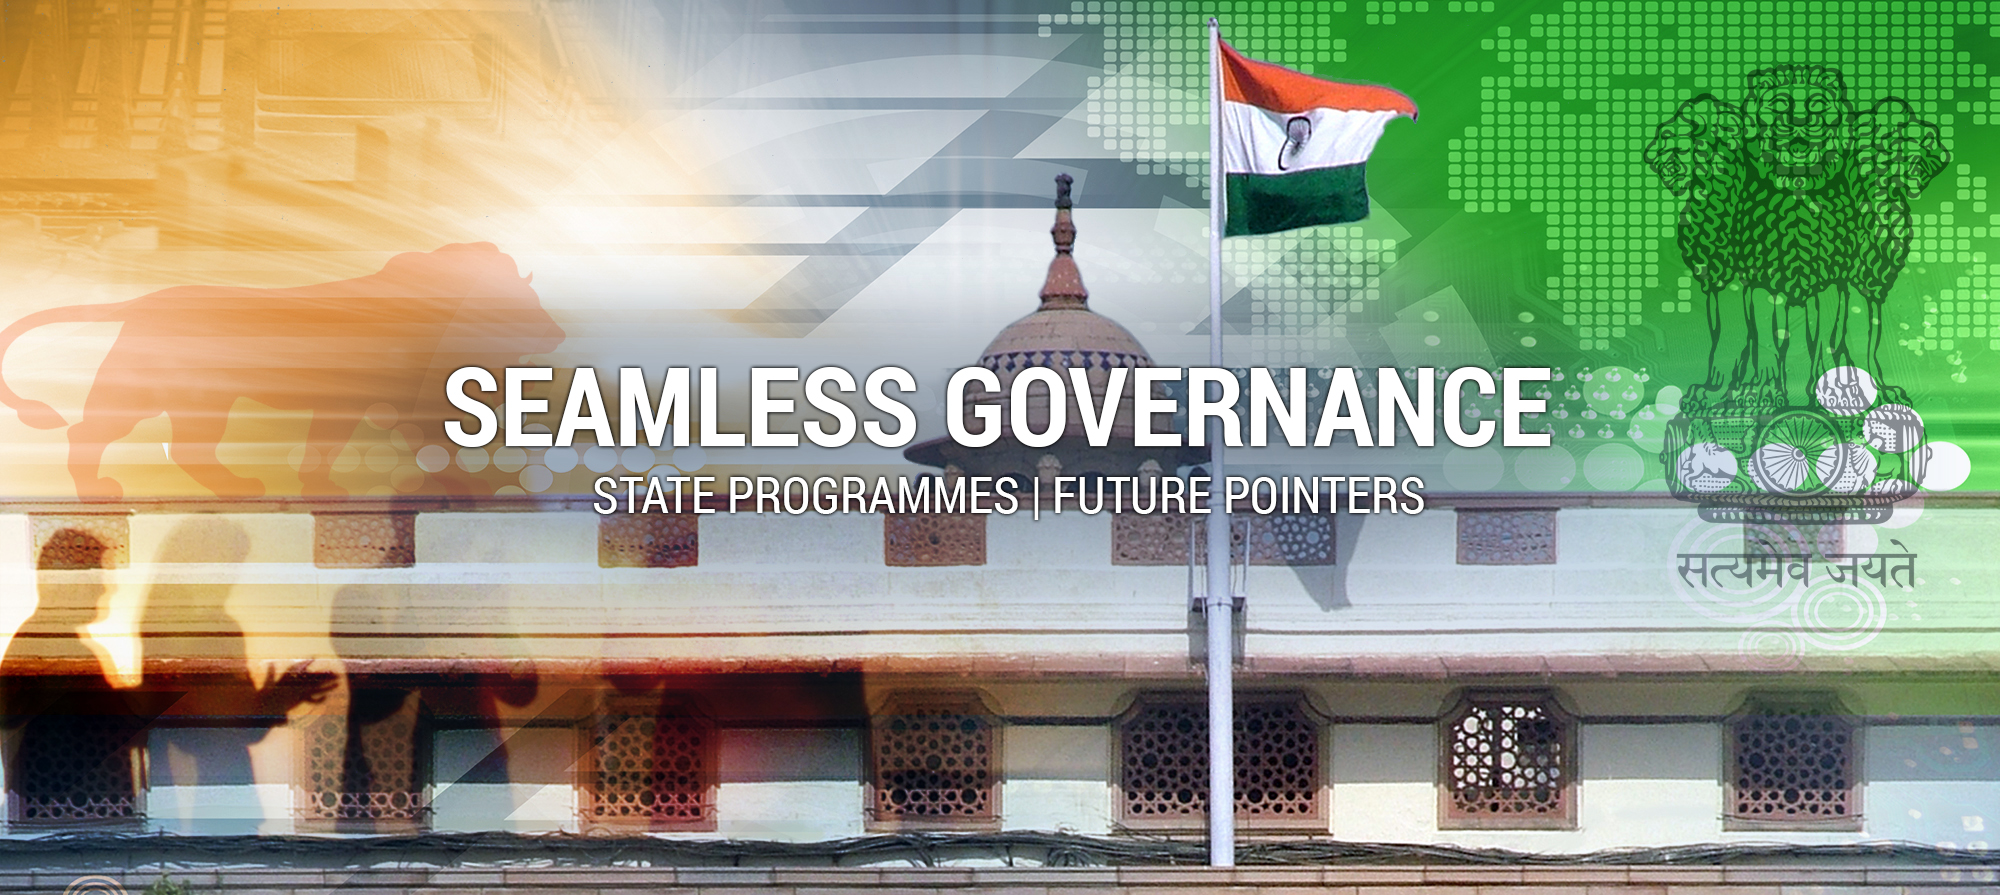 Glorious India - Seamless Governance